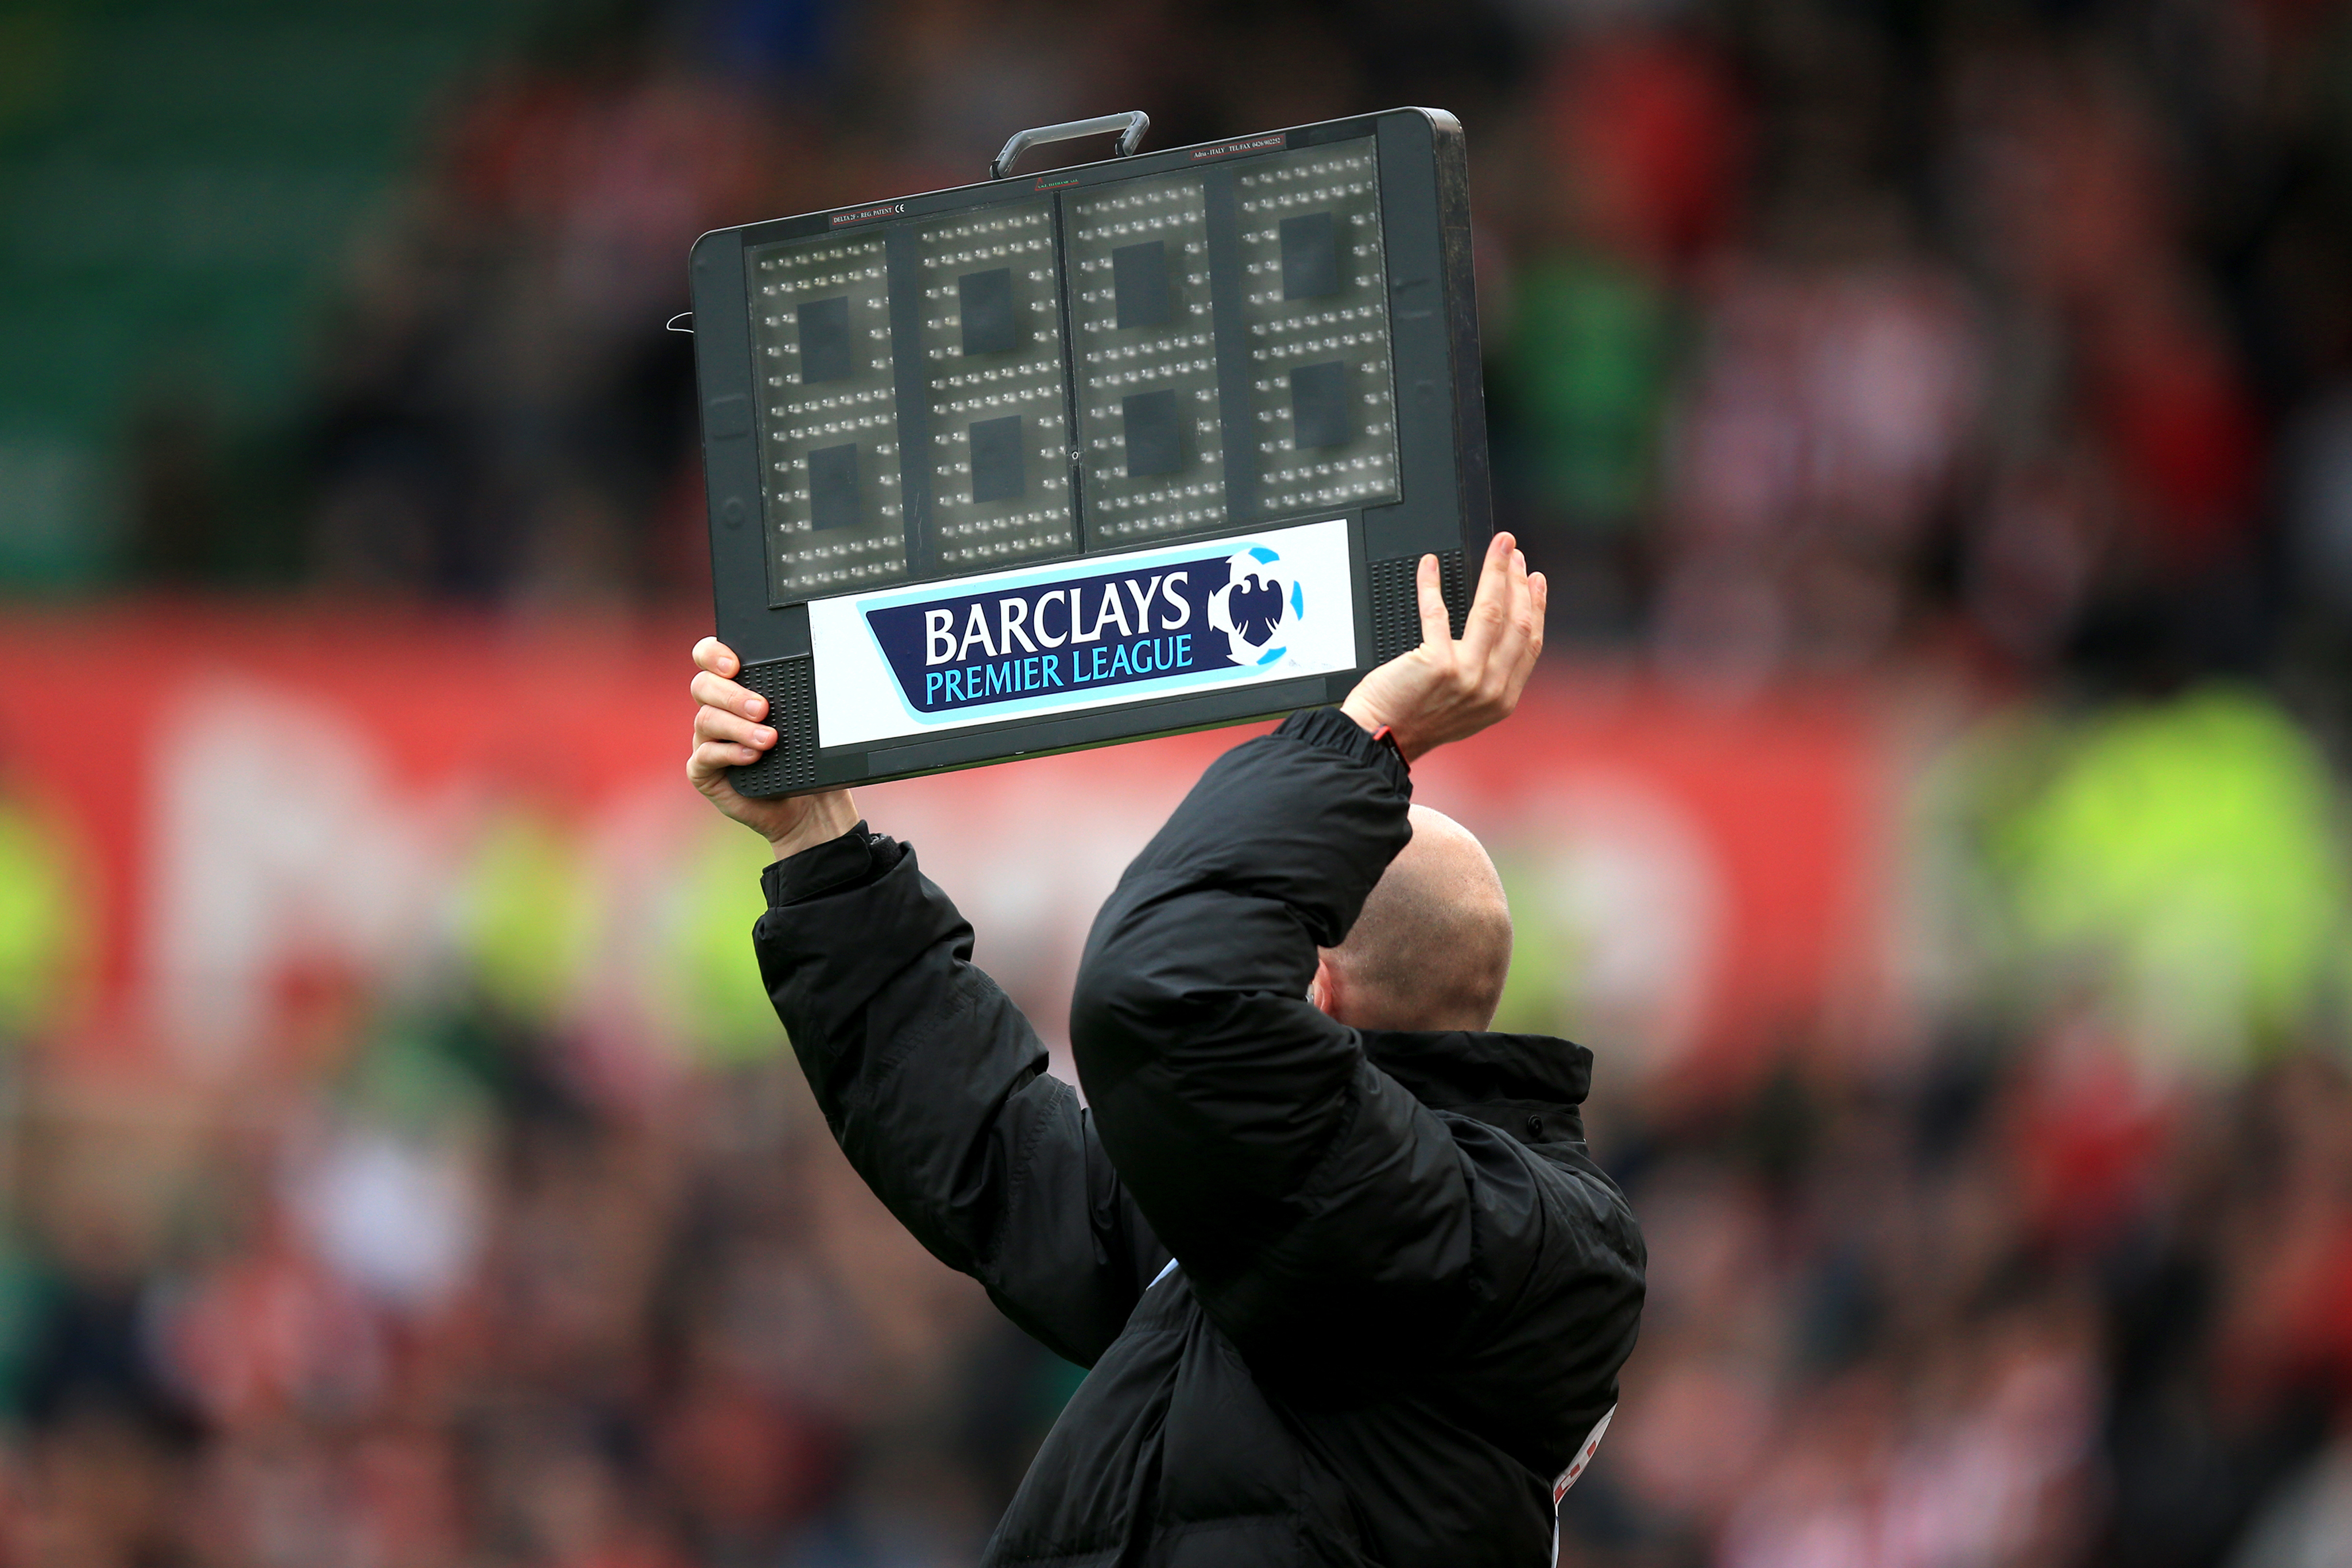 The fourth official holds up the board to signify added time